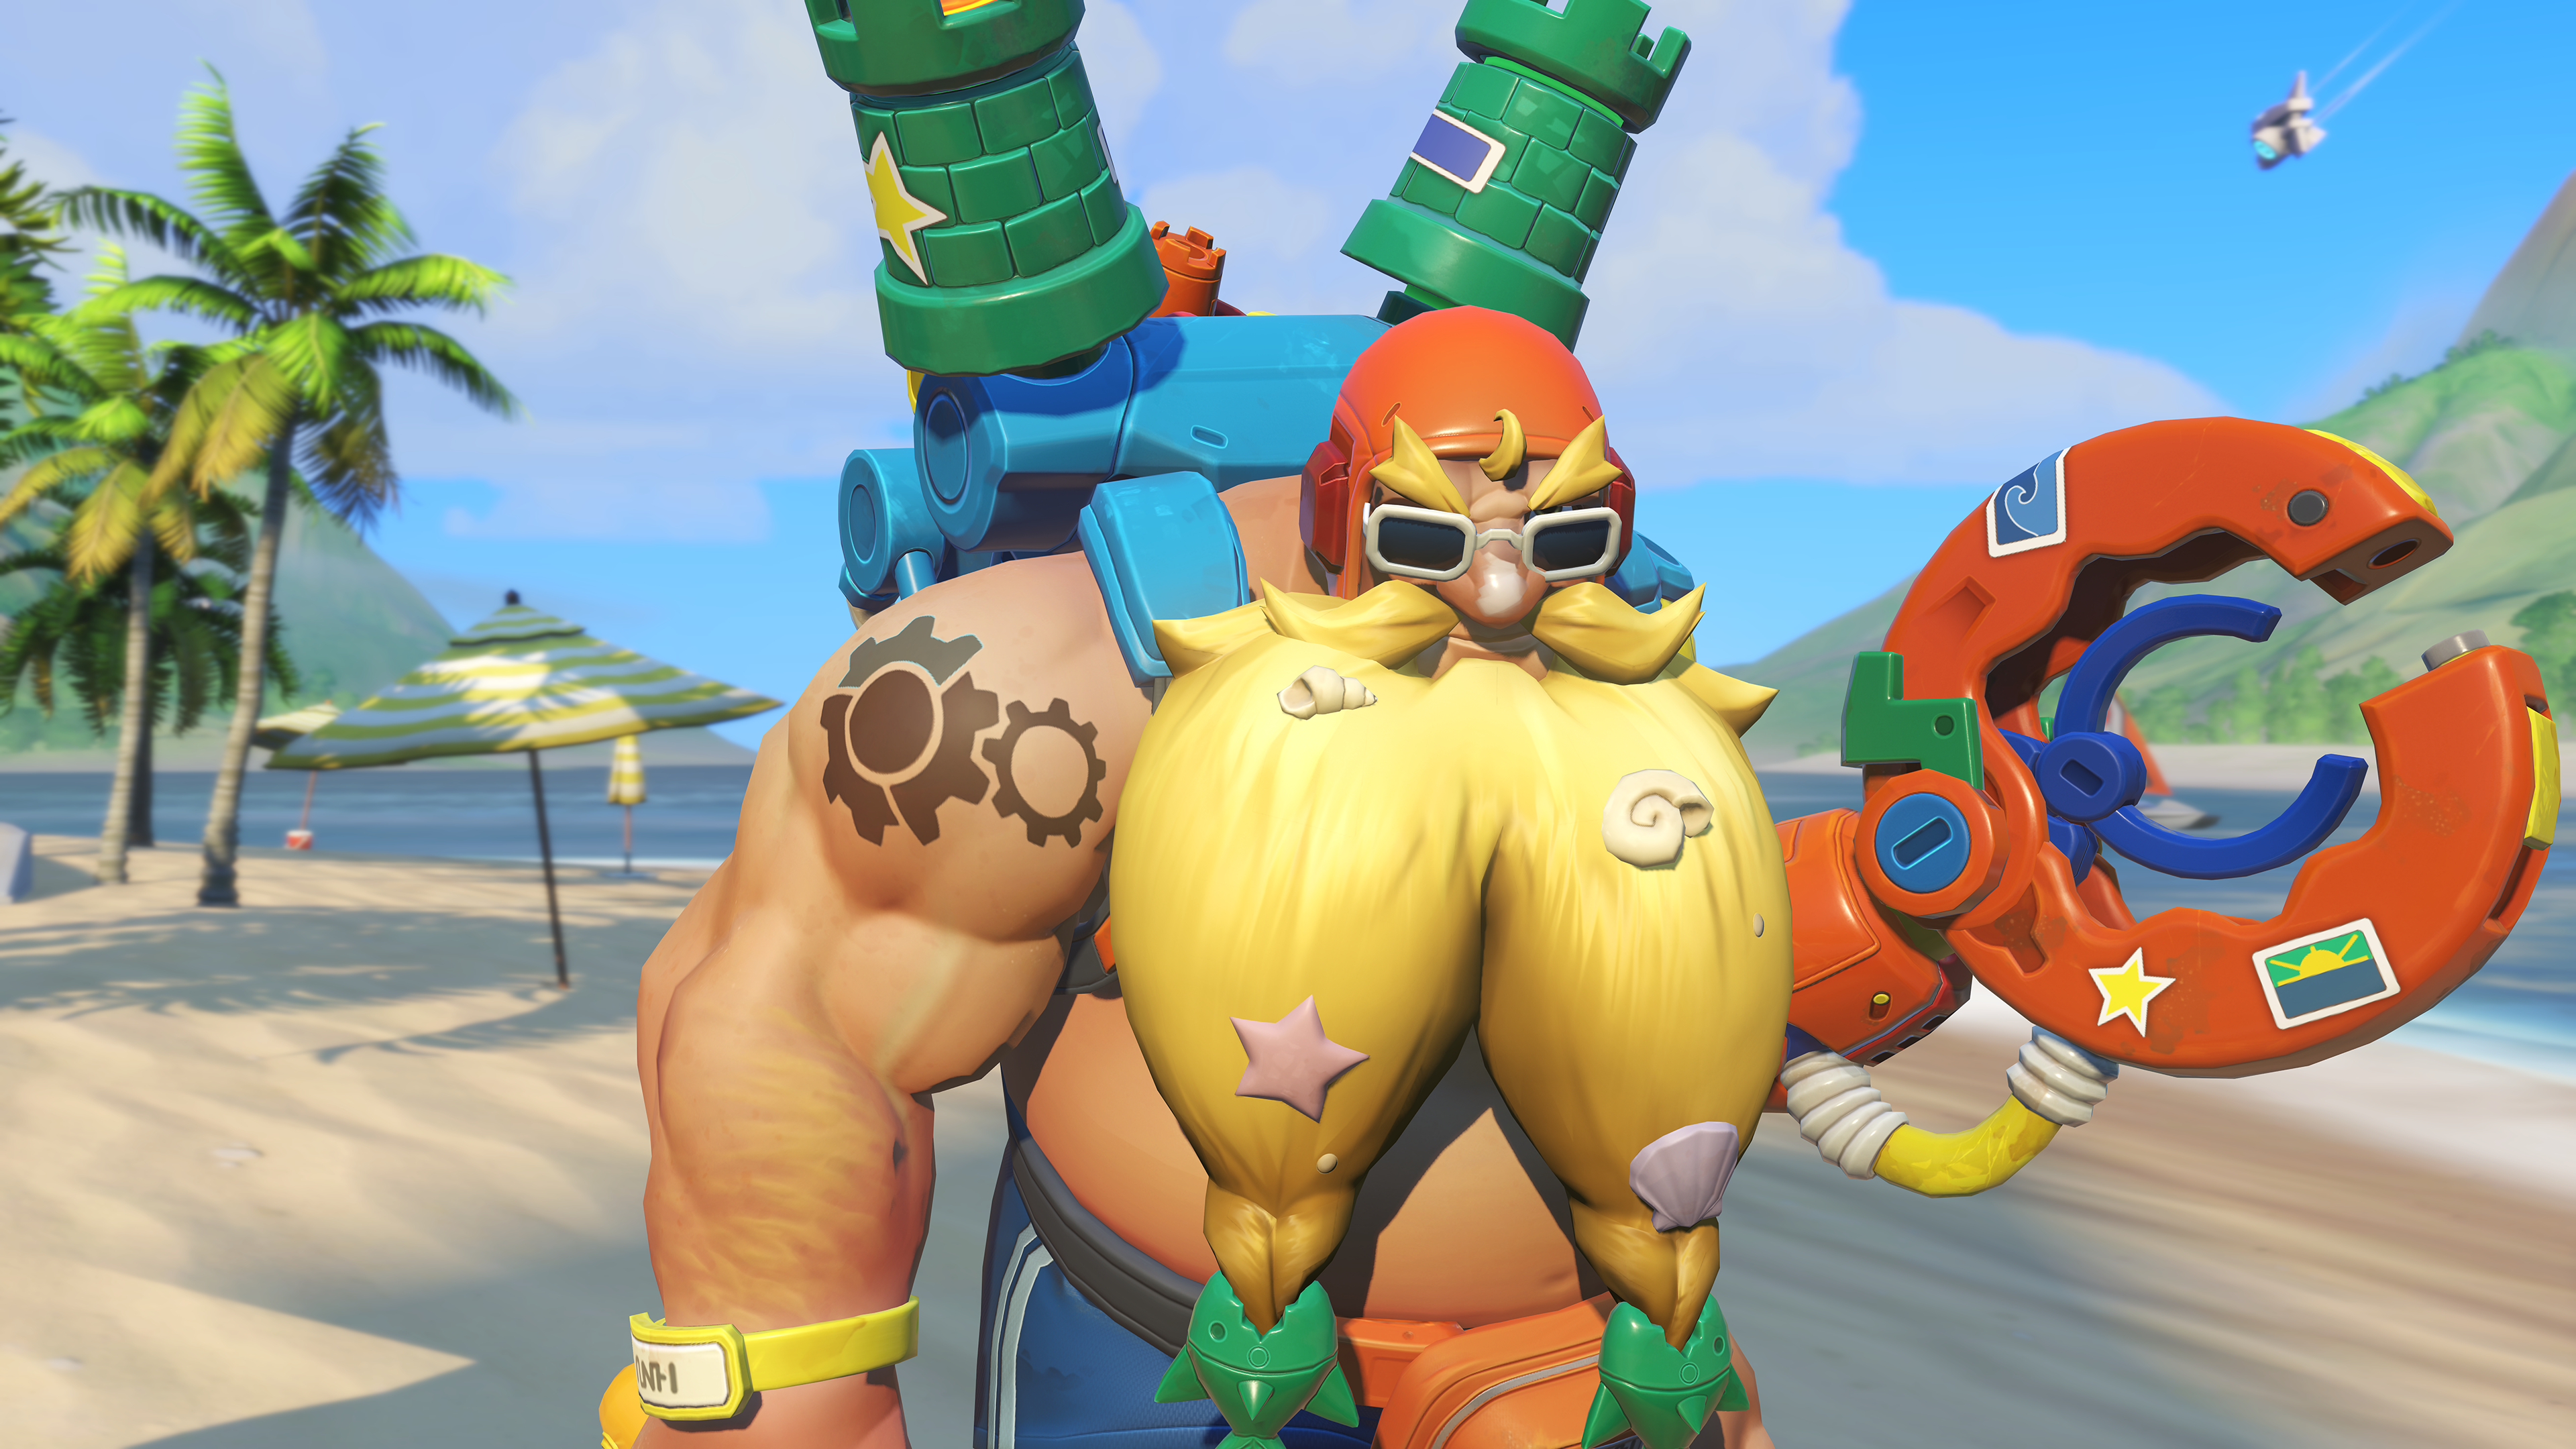 Torbjorn's Summer Games 2019 skin in Overwatch, Surf N Splash Torbjorn